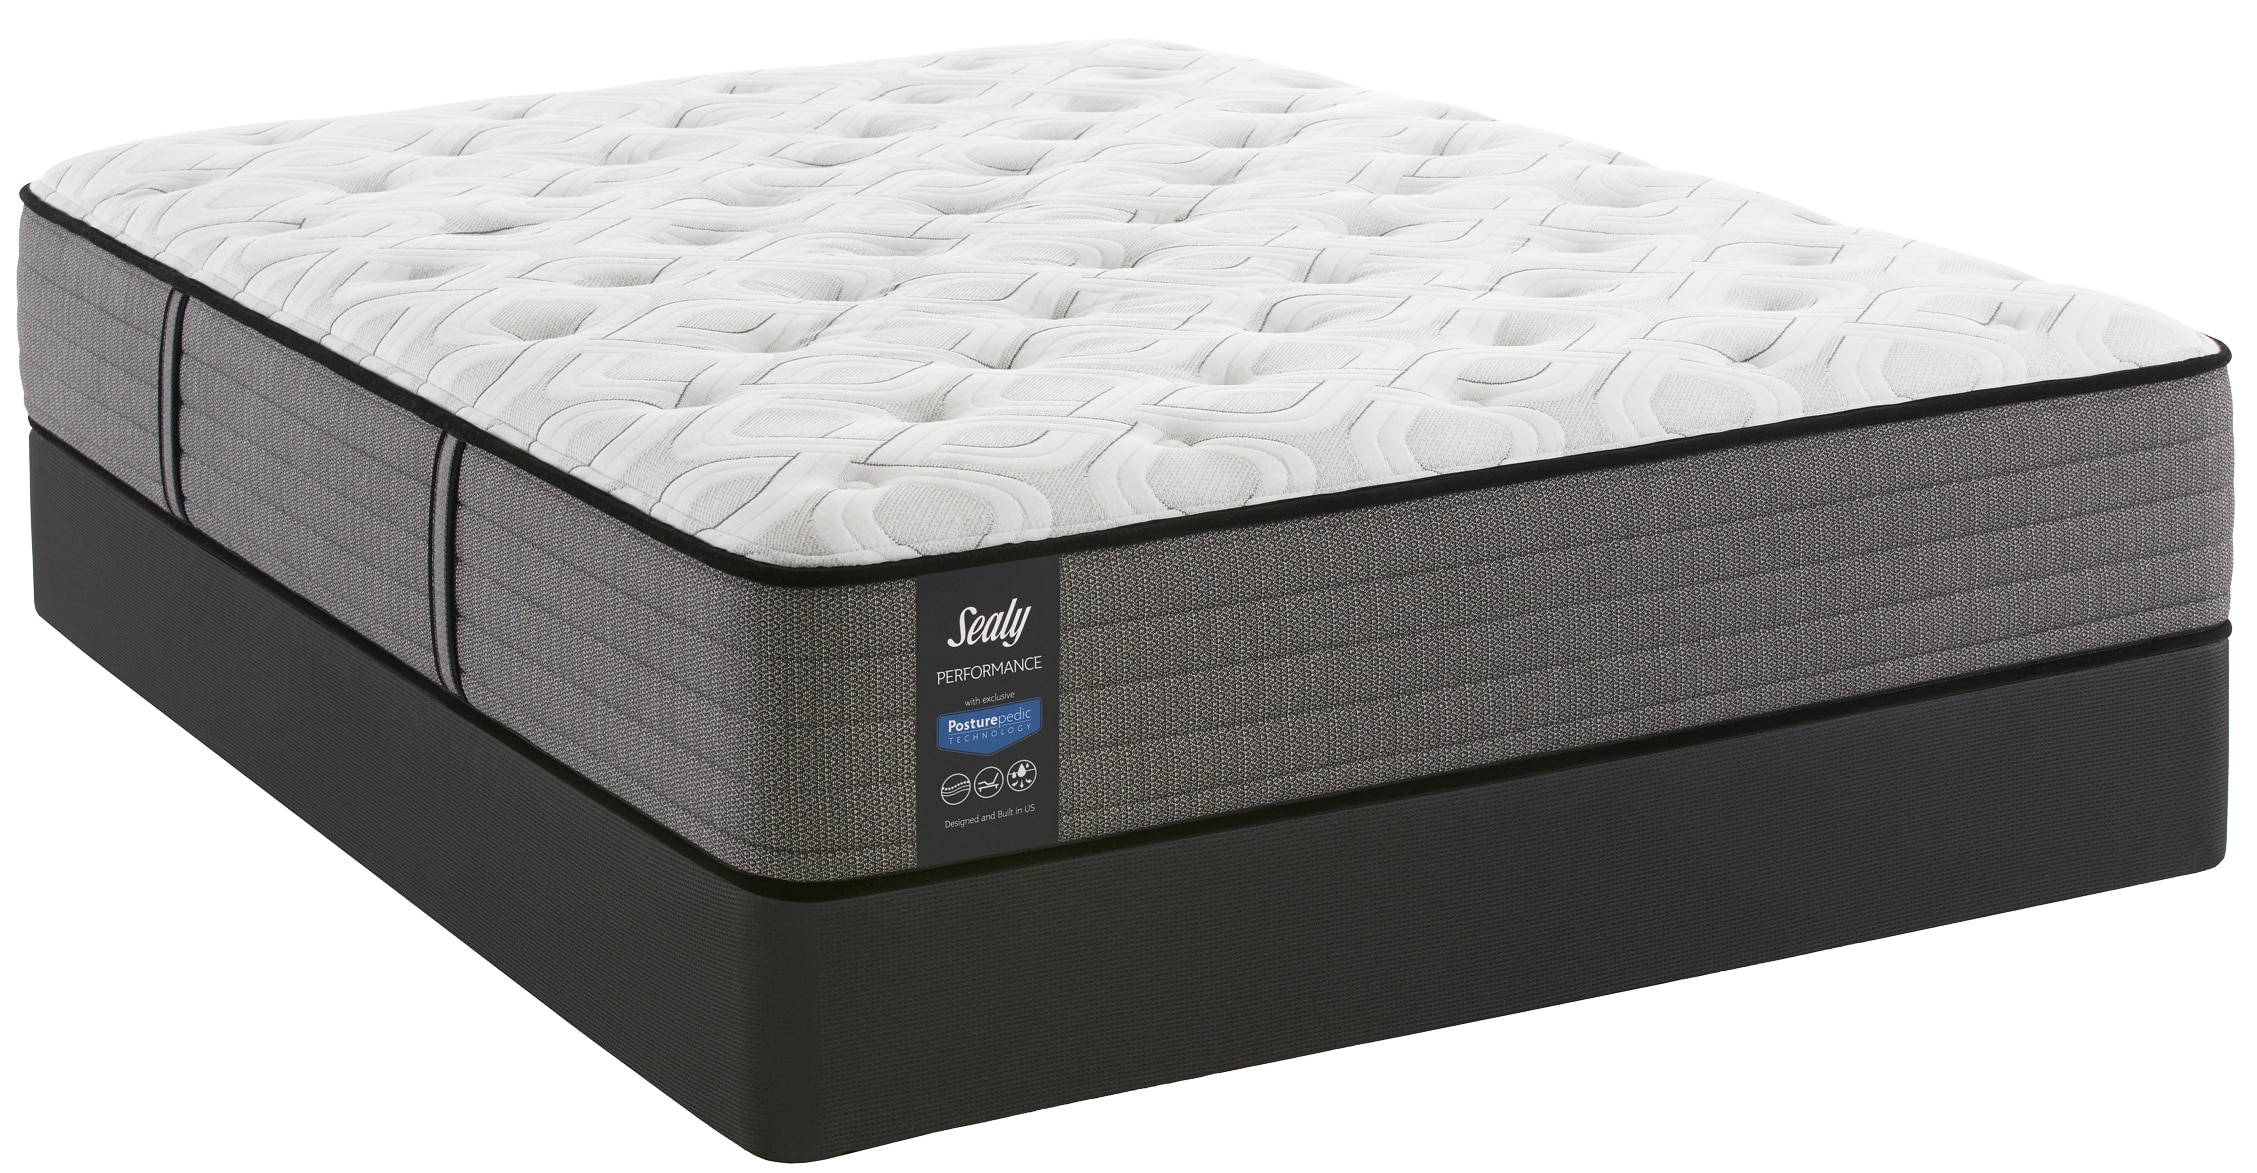 Morning Dove Cushion Firm Queen Mattress and Boxspring Set